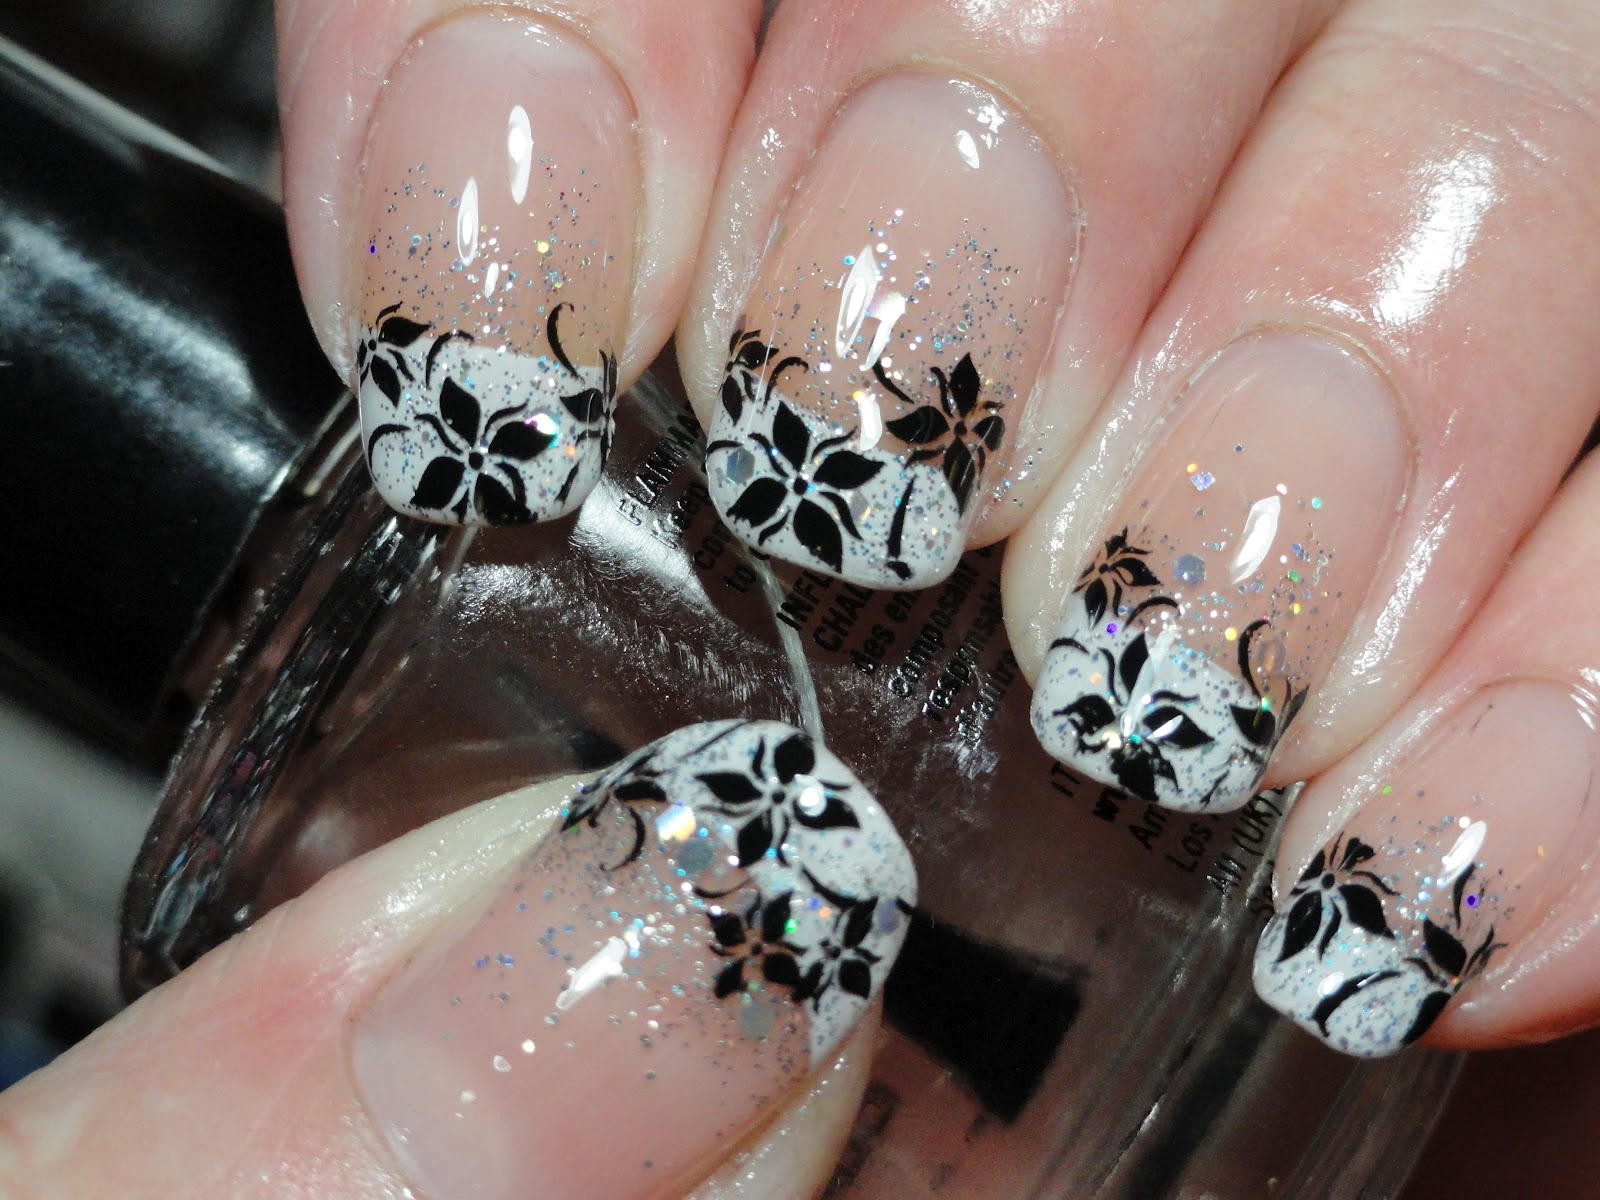 Canadian Nail Fanatic: French Tip Challenge